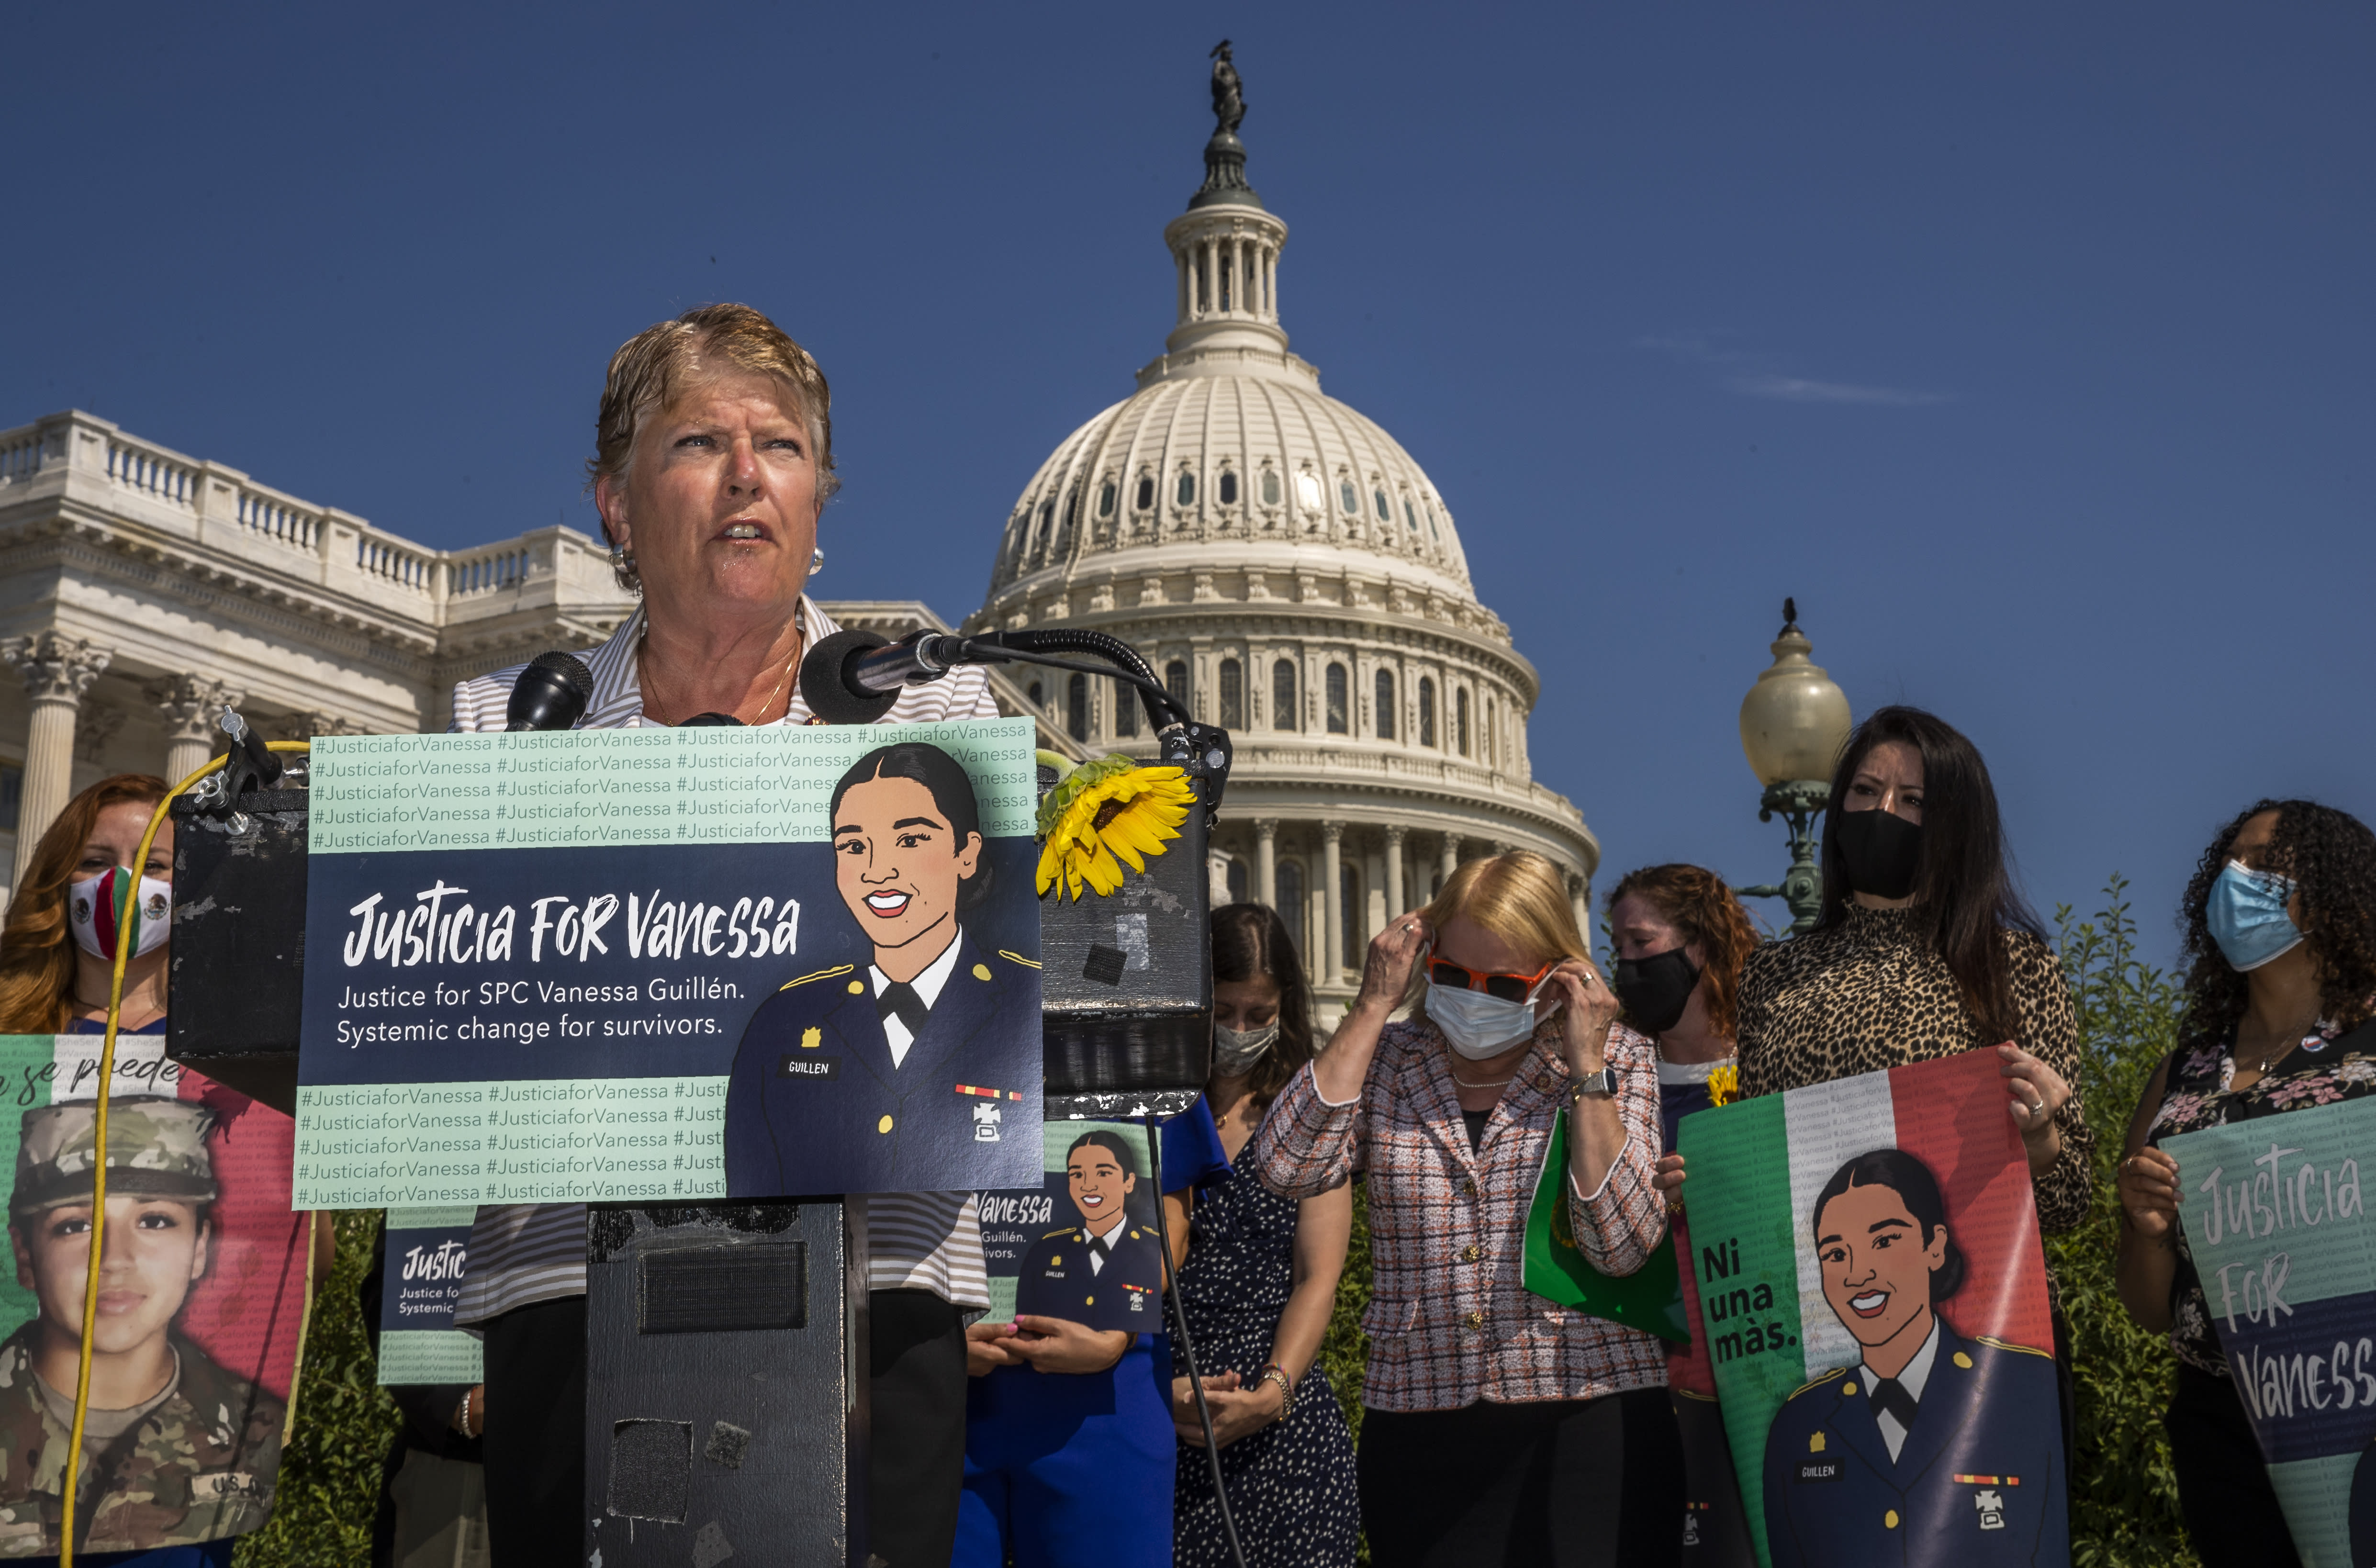 Rep. Julia Brownley, D-Calif., together with other lawmakers and supporters speaks during a news conference on Capitol Hill about ending sexual harassment and assault in the U.S. military and Department of Veterans Affairs Tuesday, July 21, 2020, in Washington. (AP Photo/Manuel Balce Ceneta)